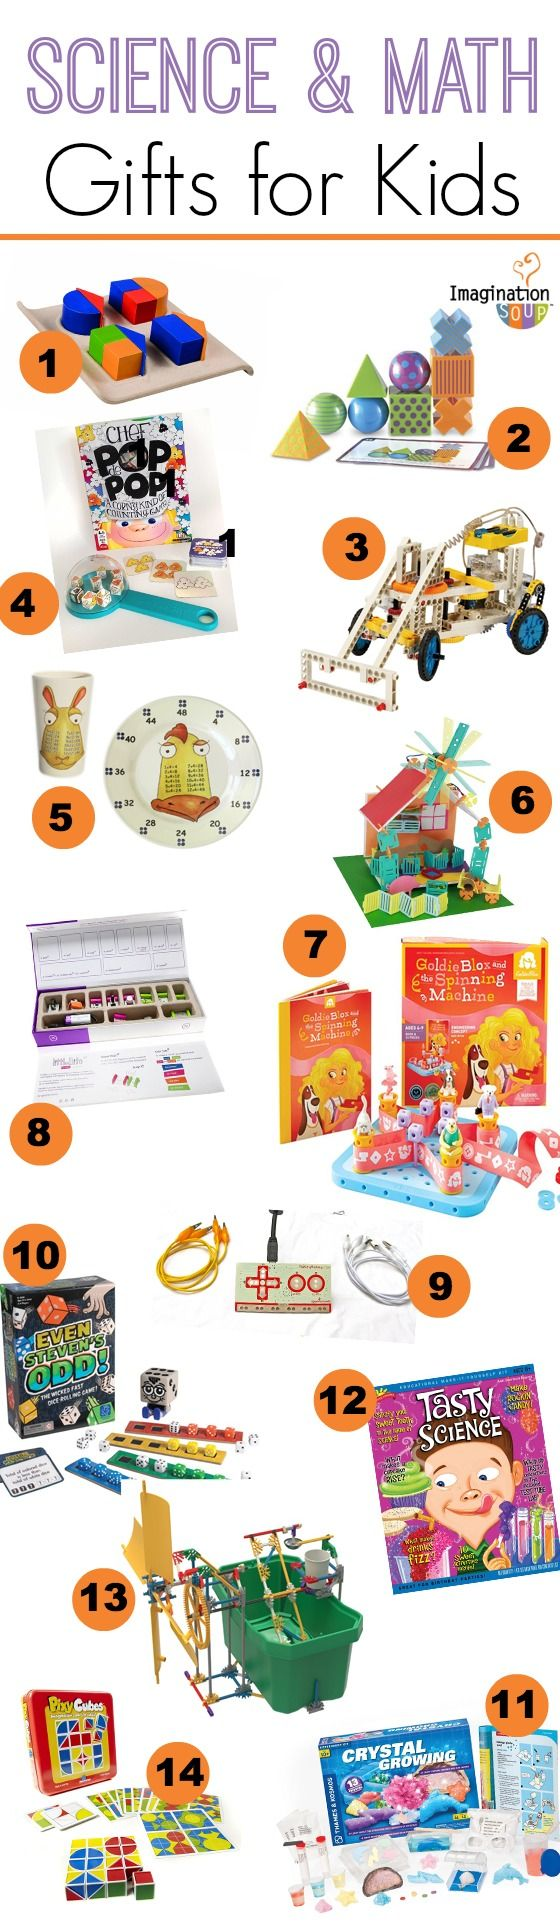 #NotABox #UPSHappy Giftscience and math gifts for kids Gift Guide for Kids: Math and Science Learning Toys